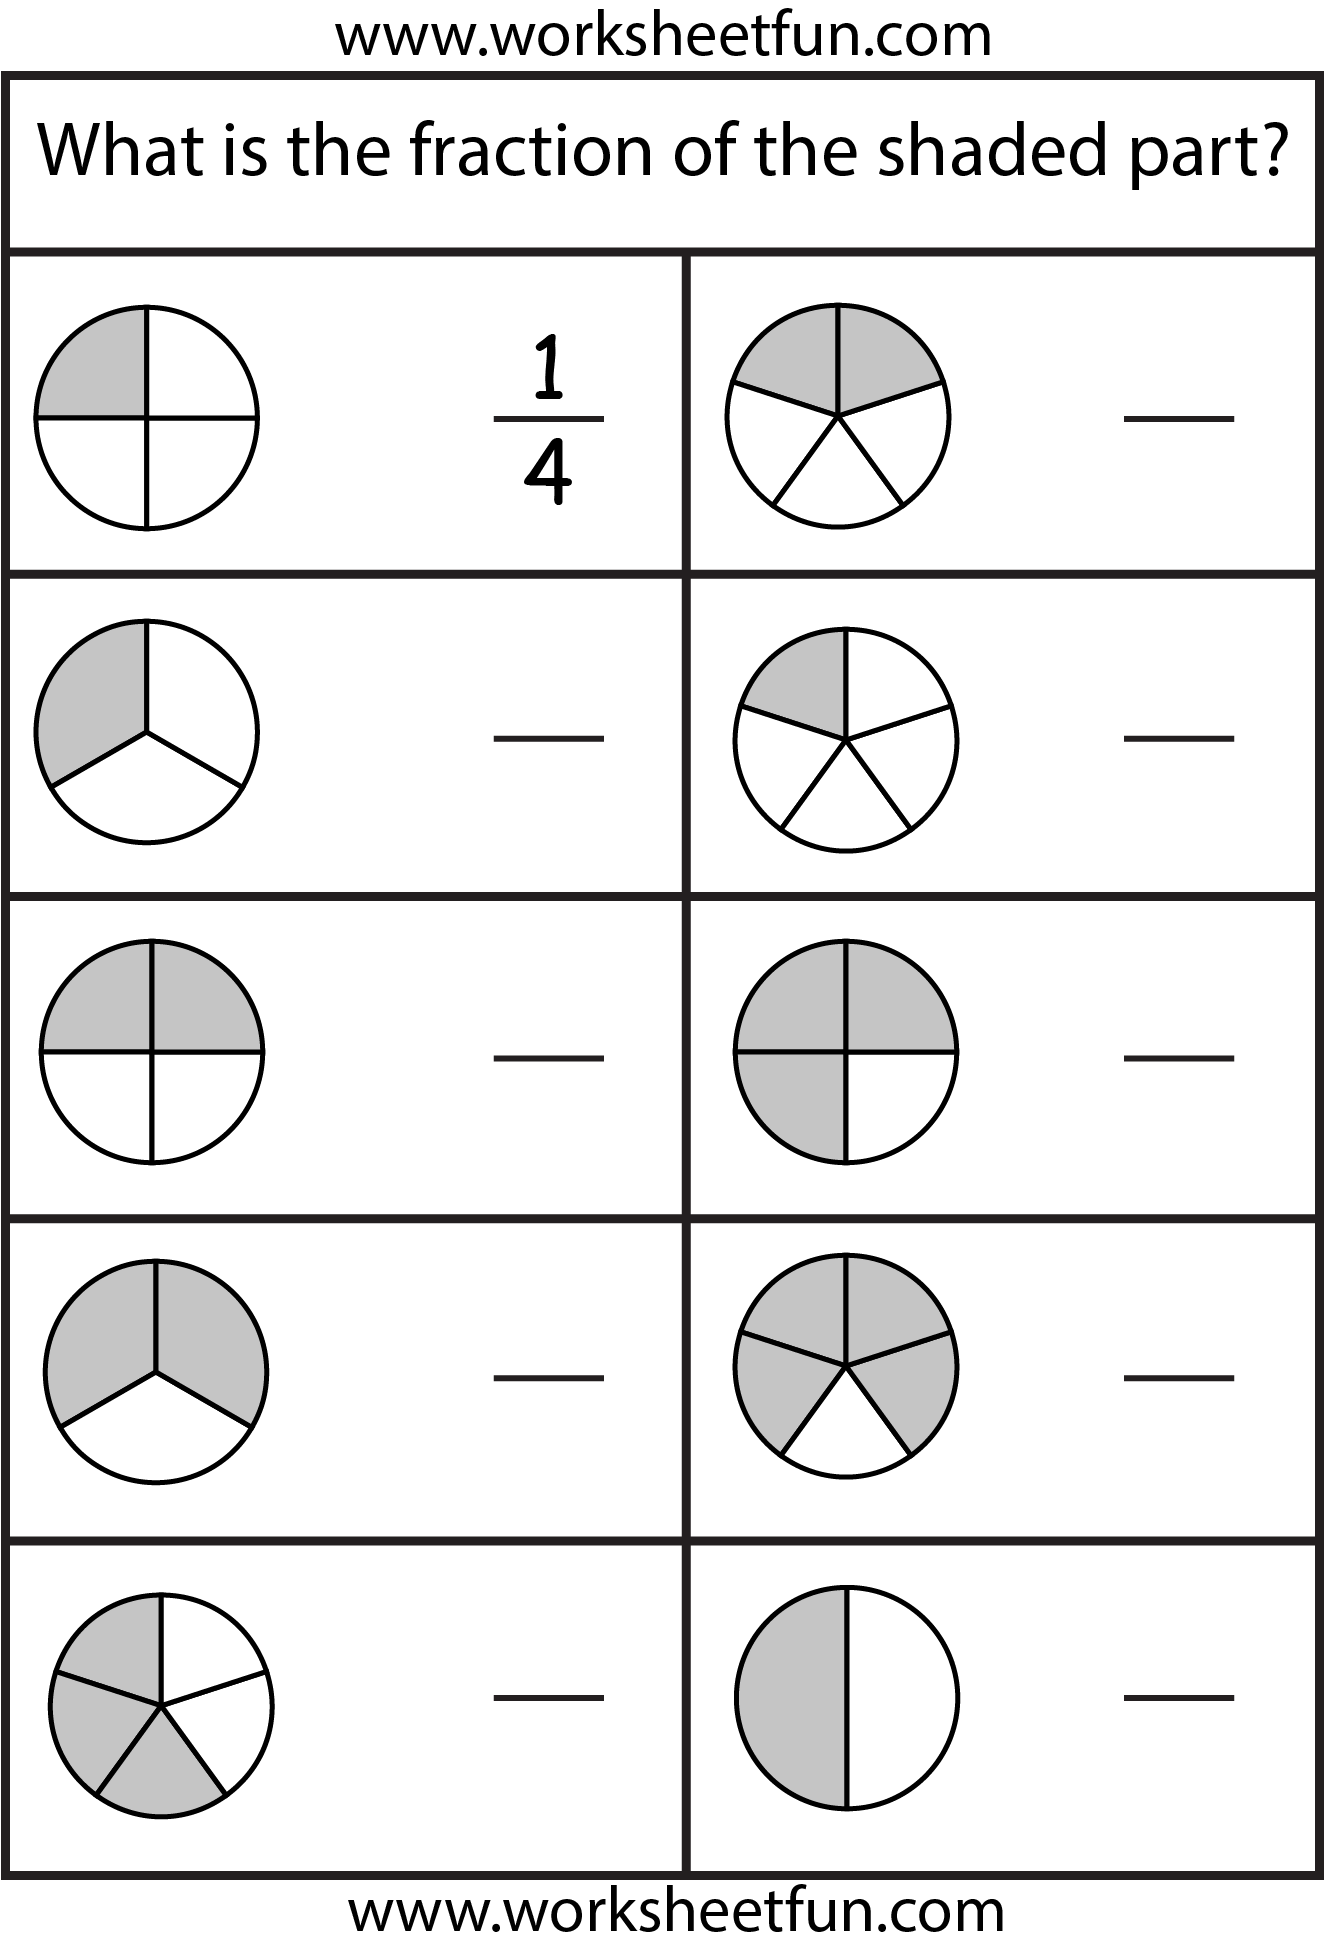 worksheet Simple Fraction fractions tier 3 math games pinterest colors the ojays and fractions